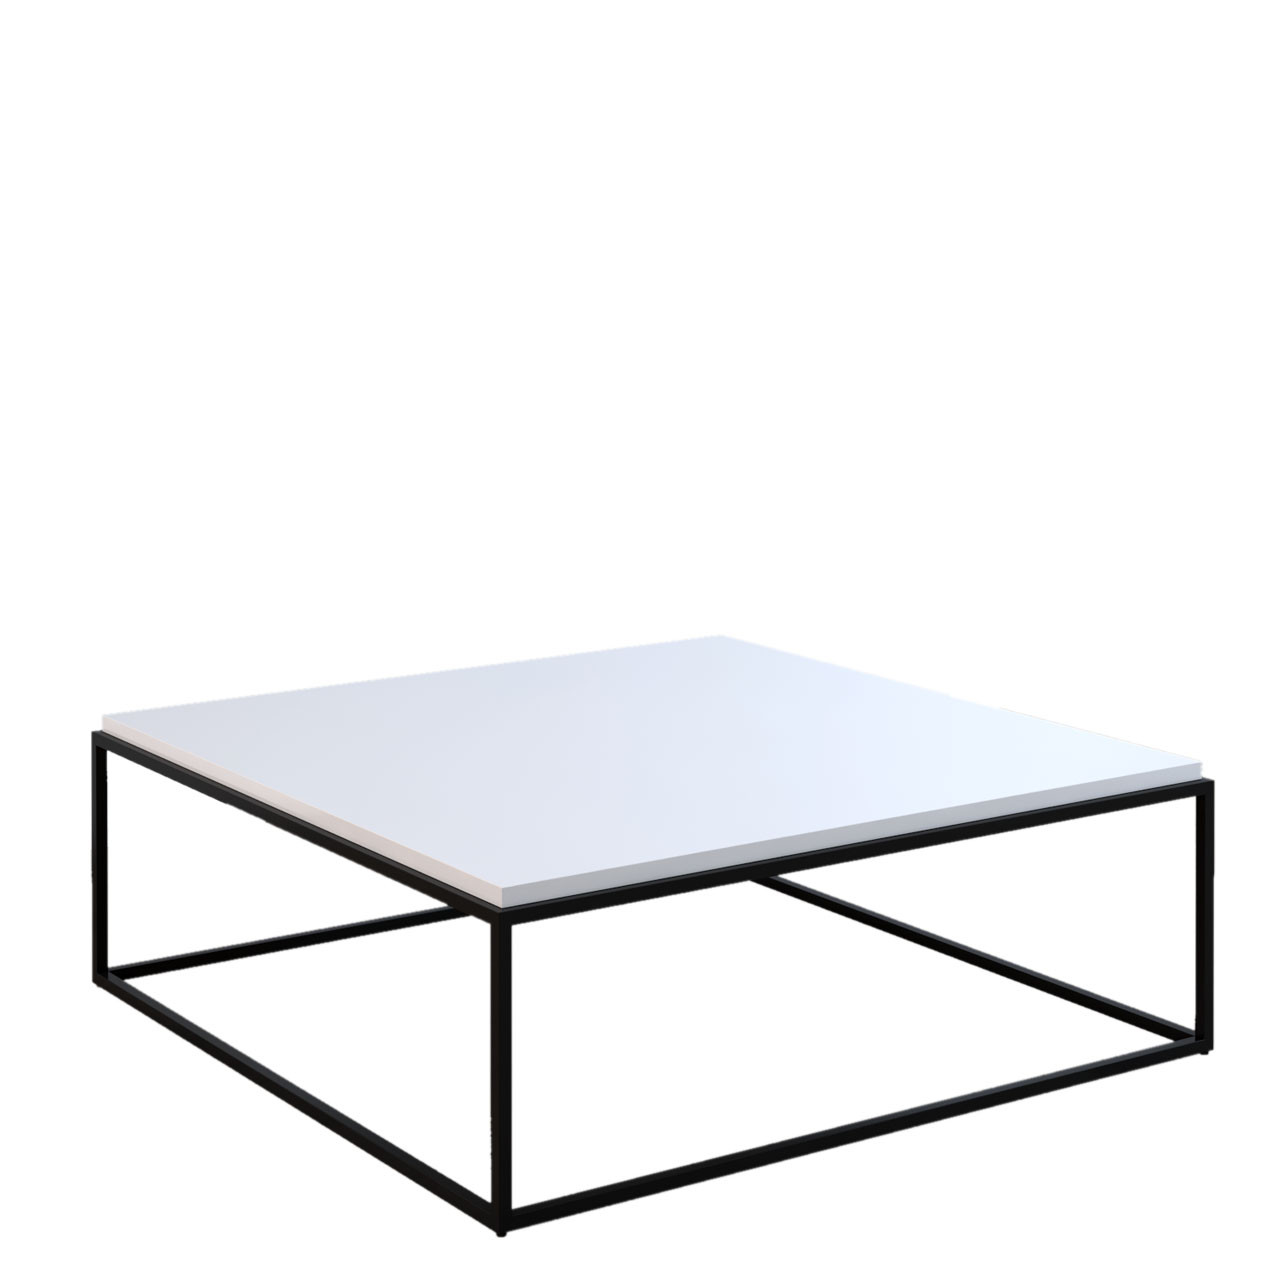 Grid Square Coffee Table White Gloss With Black Legs Cityside Furniture